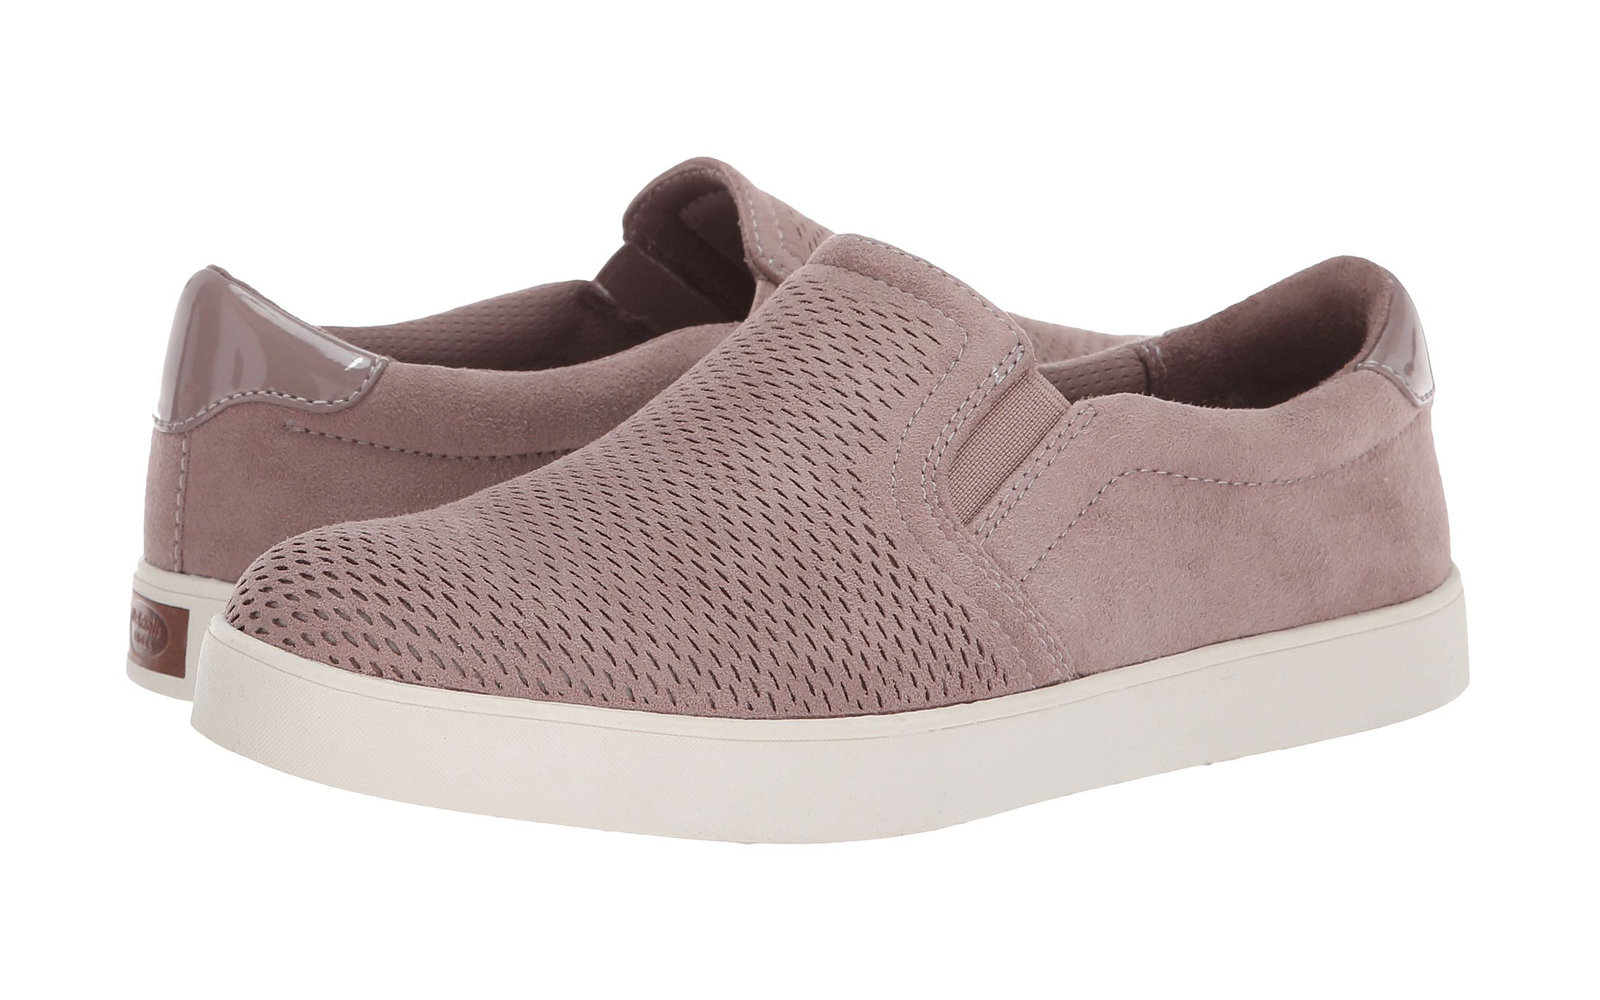 624fb406616b Dr. Scholl s Madison in Hydrangea Chop Microfiber. Best Sneakers on Sale at  Zappos